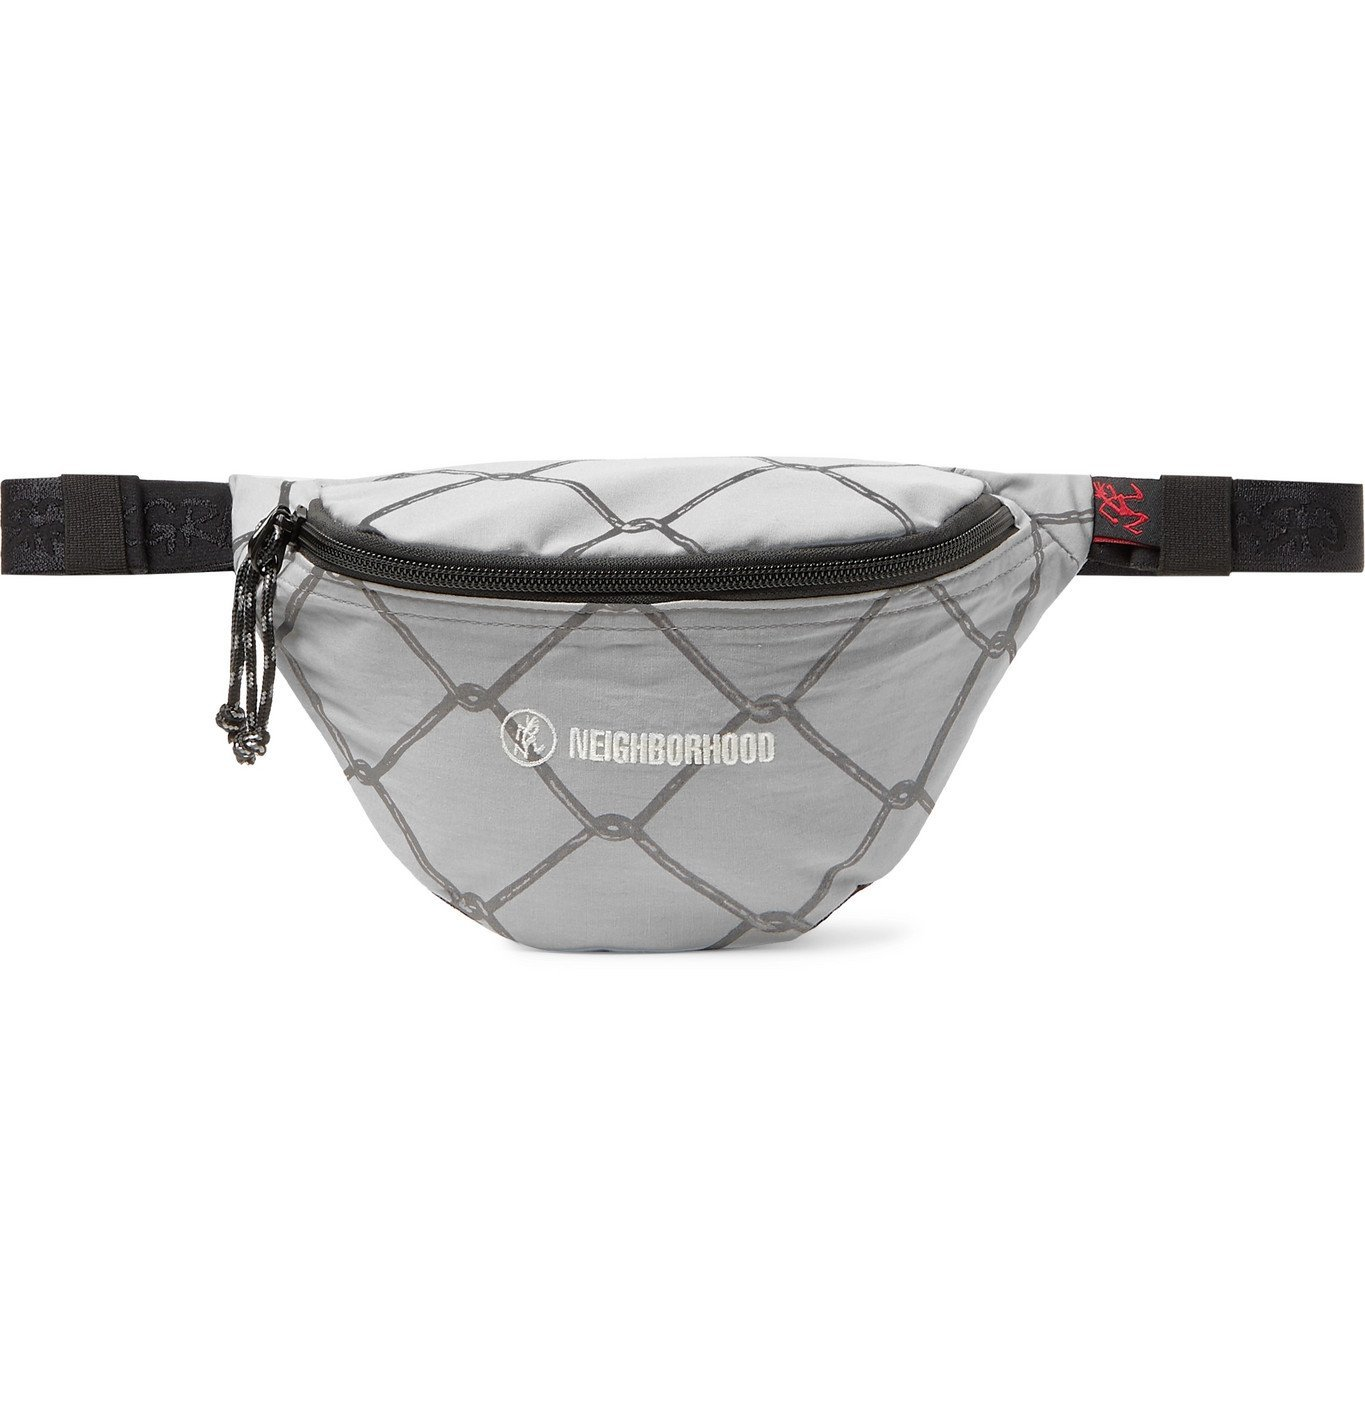 Photo: Neighborhood - Gramicci Logo-Embroidered Printed Canvas and Mesh Belt Bag - Gray